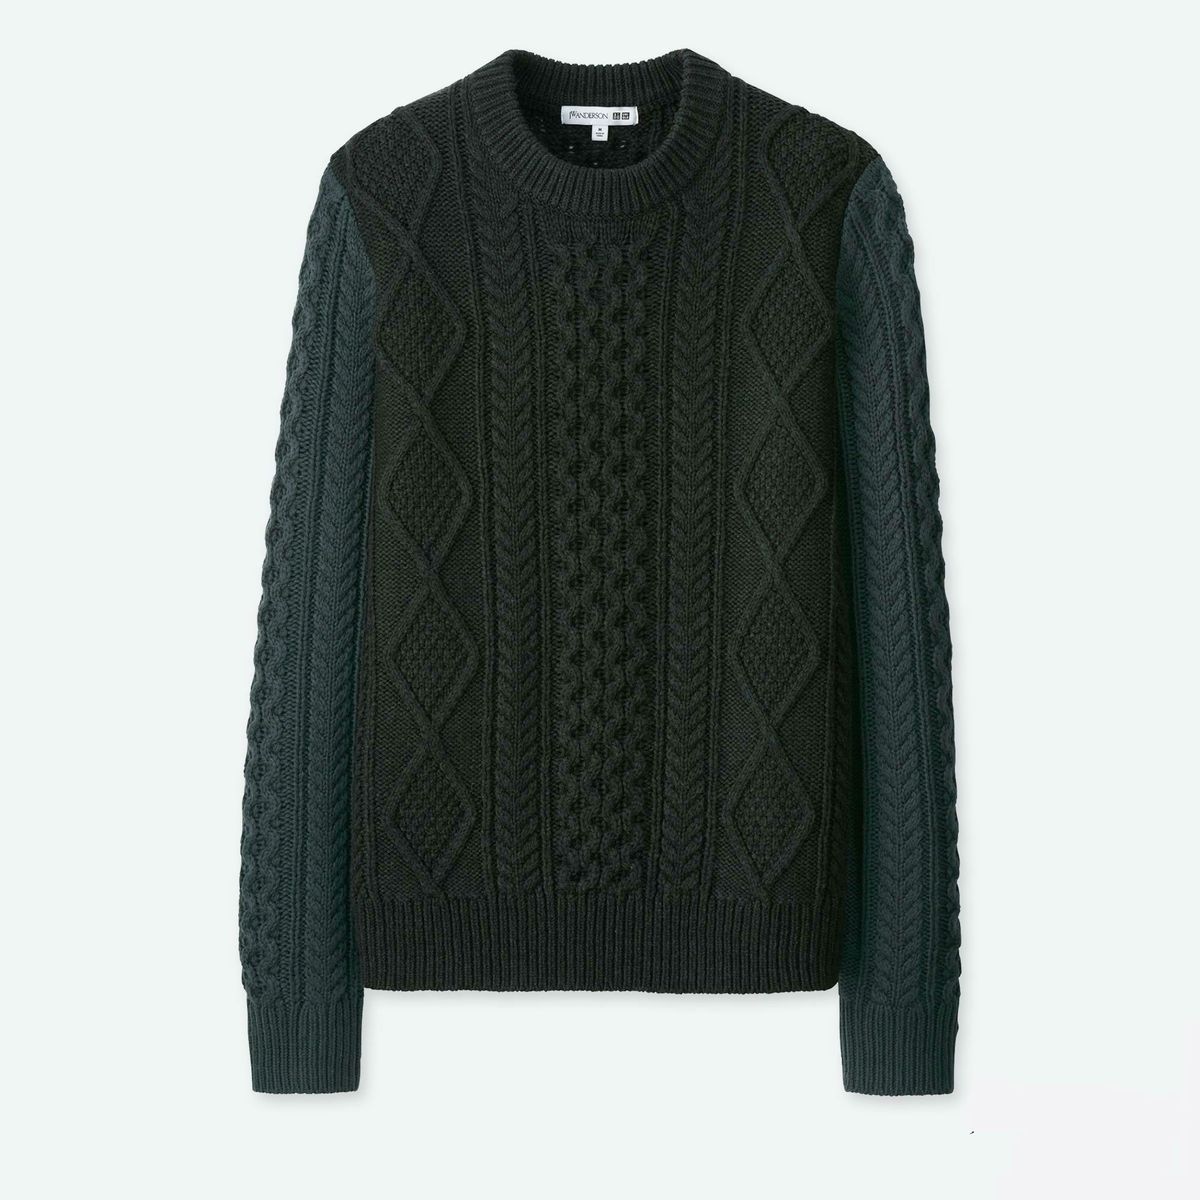 An olive cable knit sweater